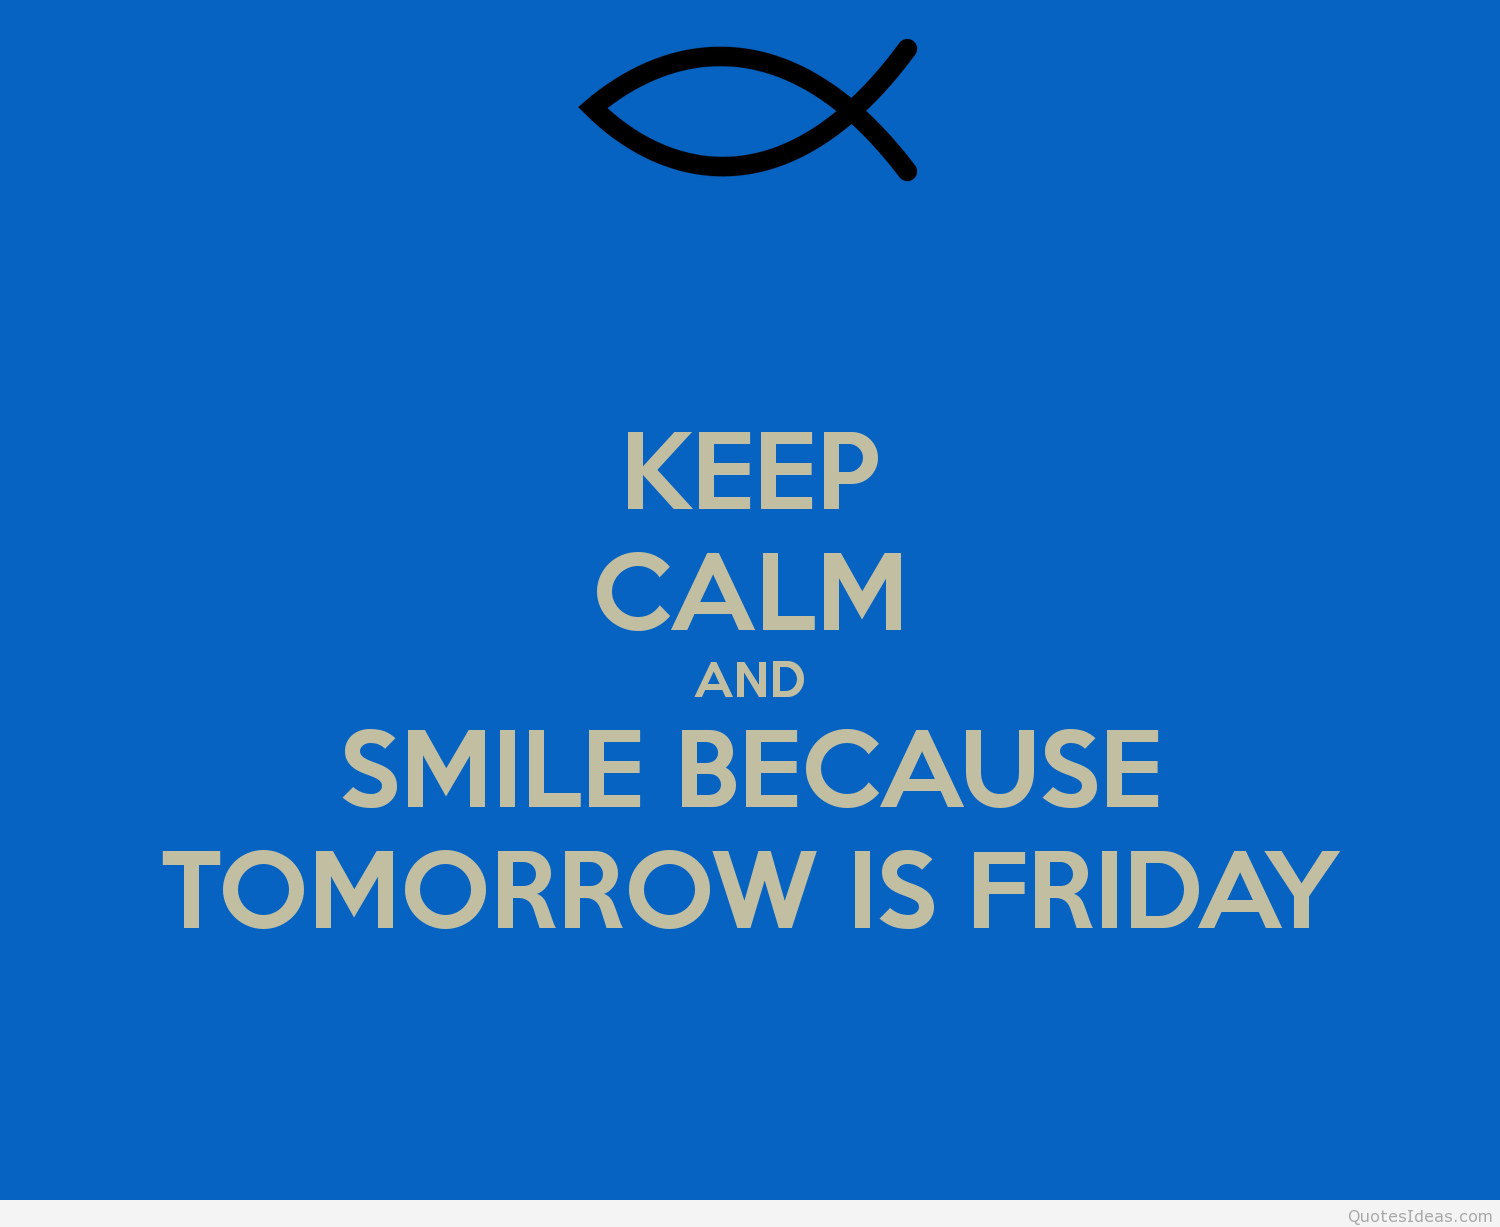 Tomorrow Funny Quotes Quotesgram: Tomorrow Is Friday Quotes. QuotesGram